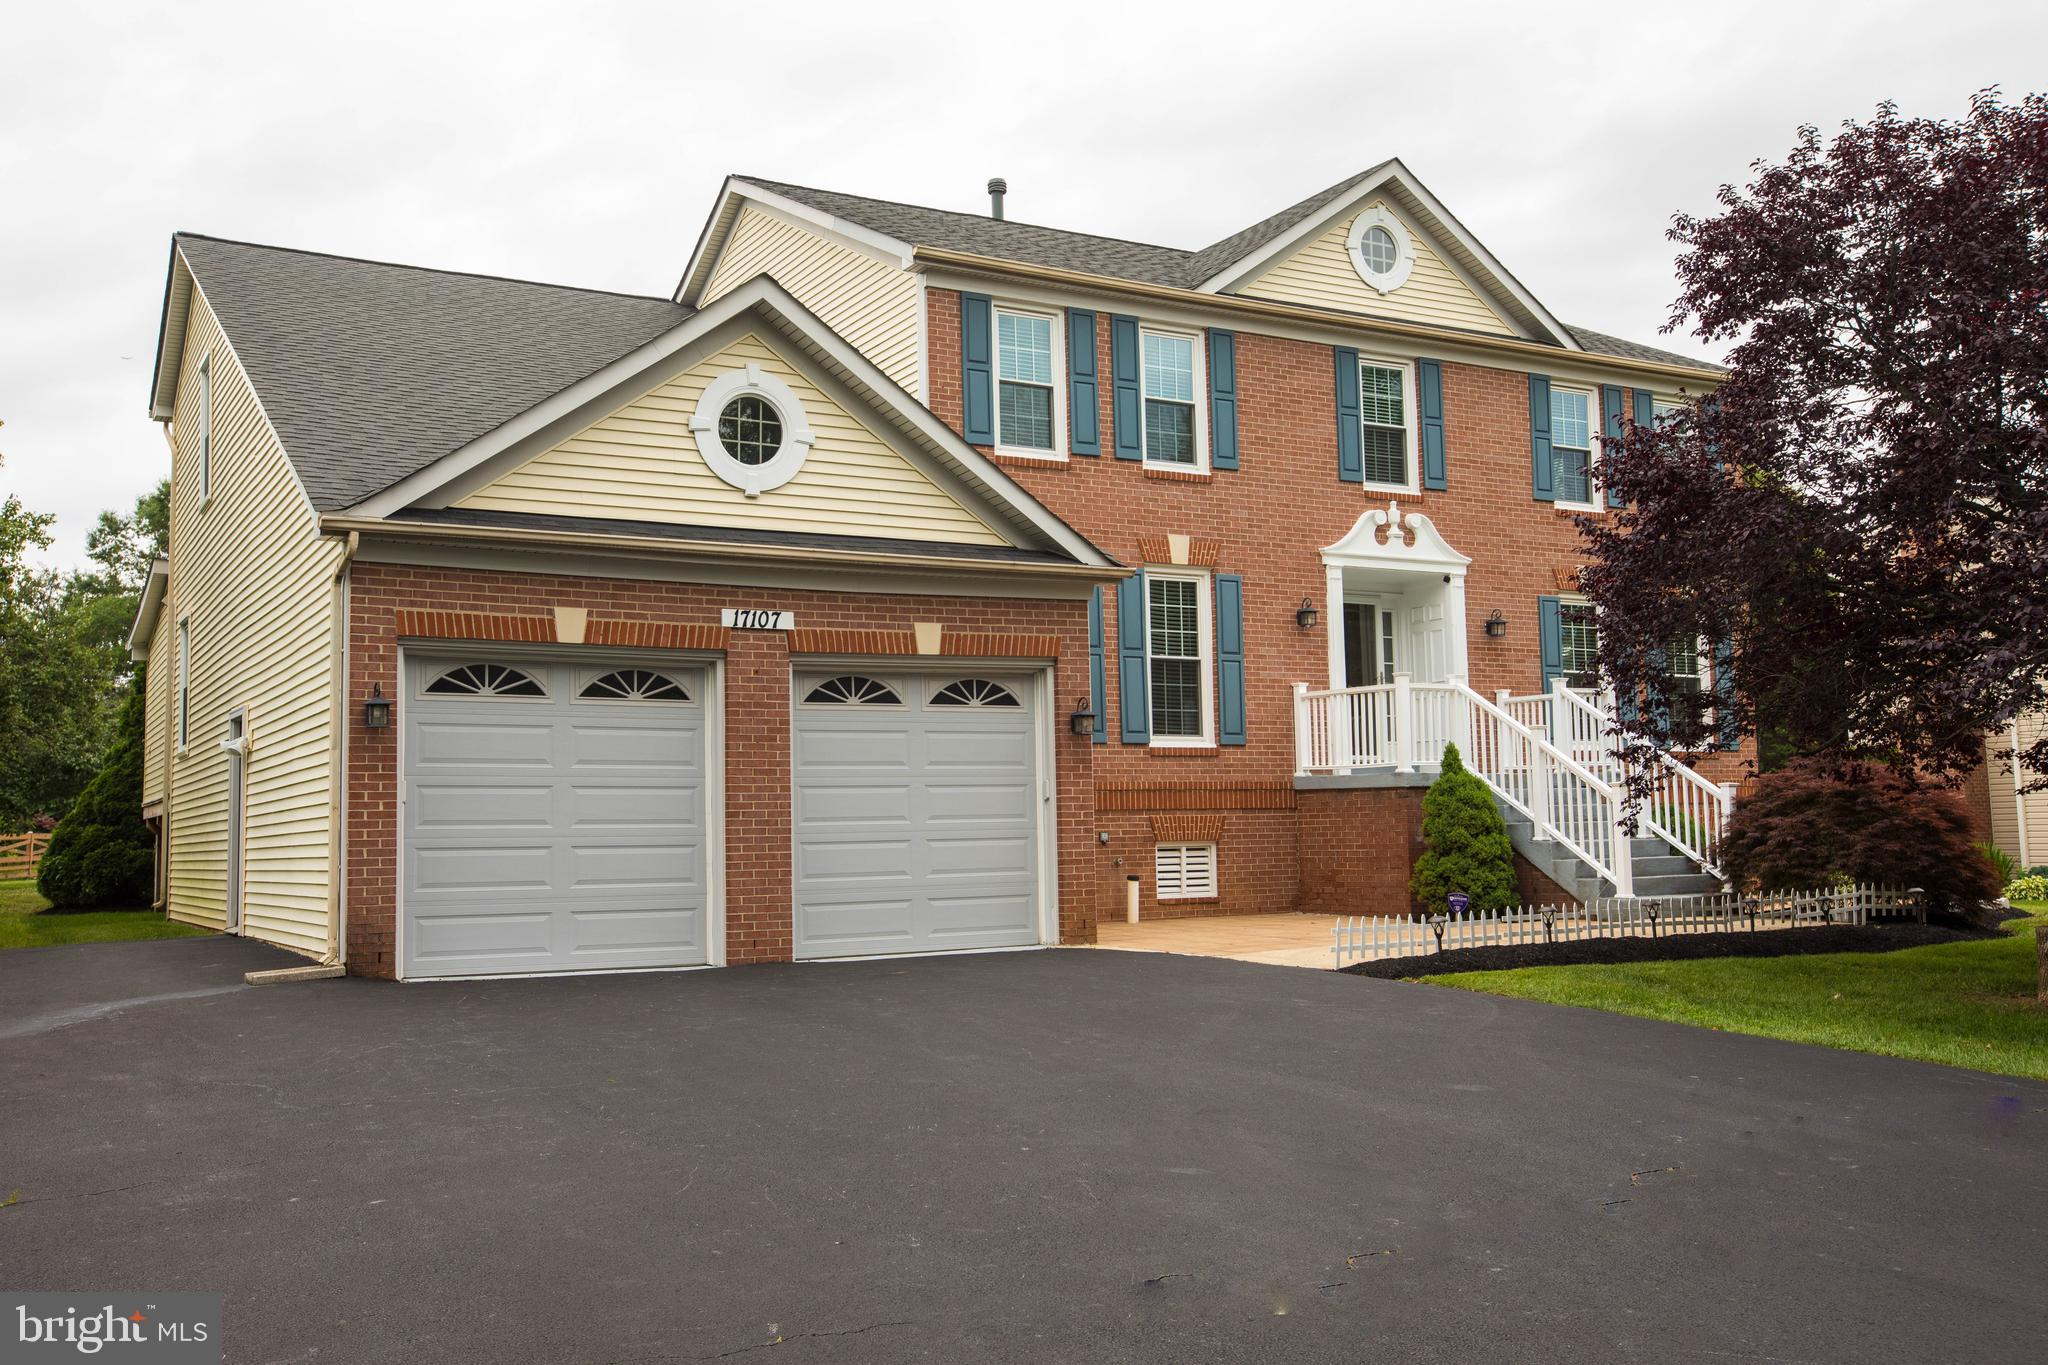 17107 CAMPBELL FARM ROAD, POOLESVILLE, MD 20837